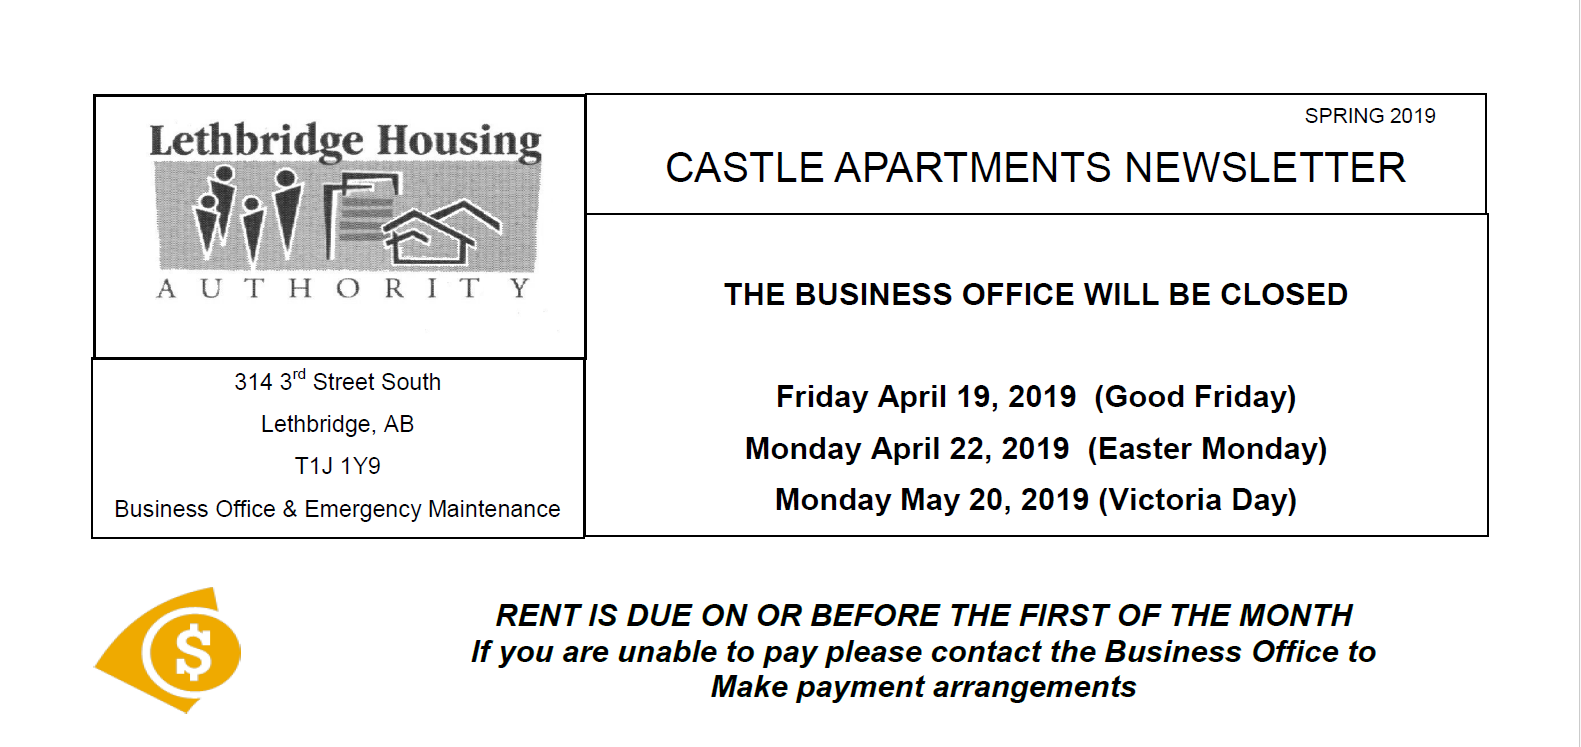 Castle Apartments Spring 2019 Newsletter